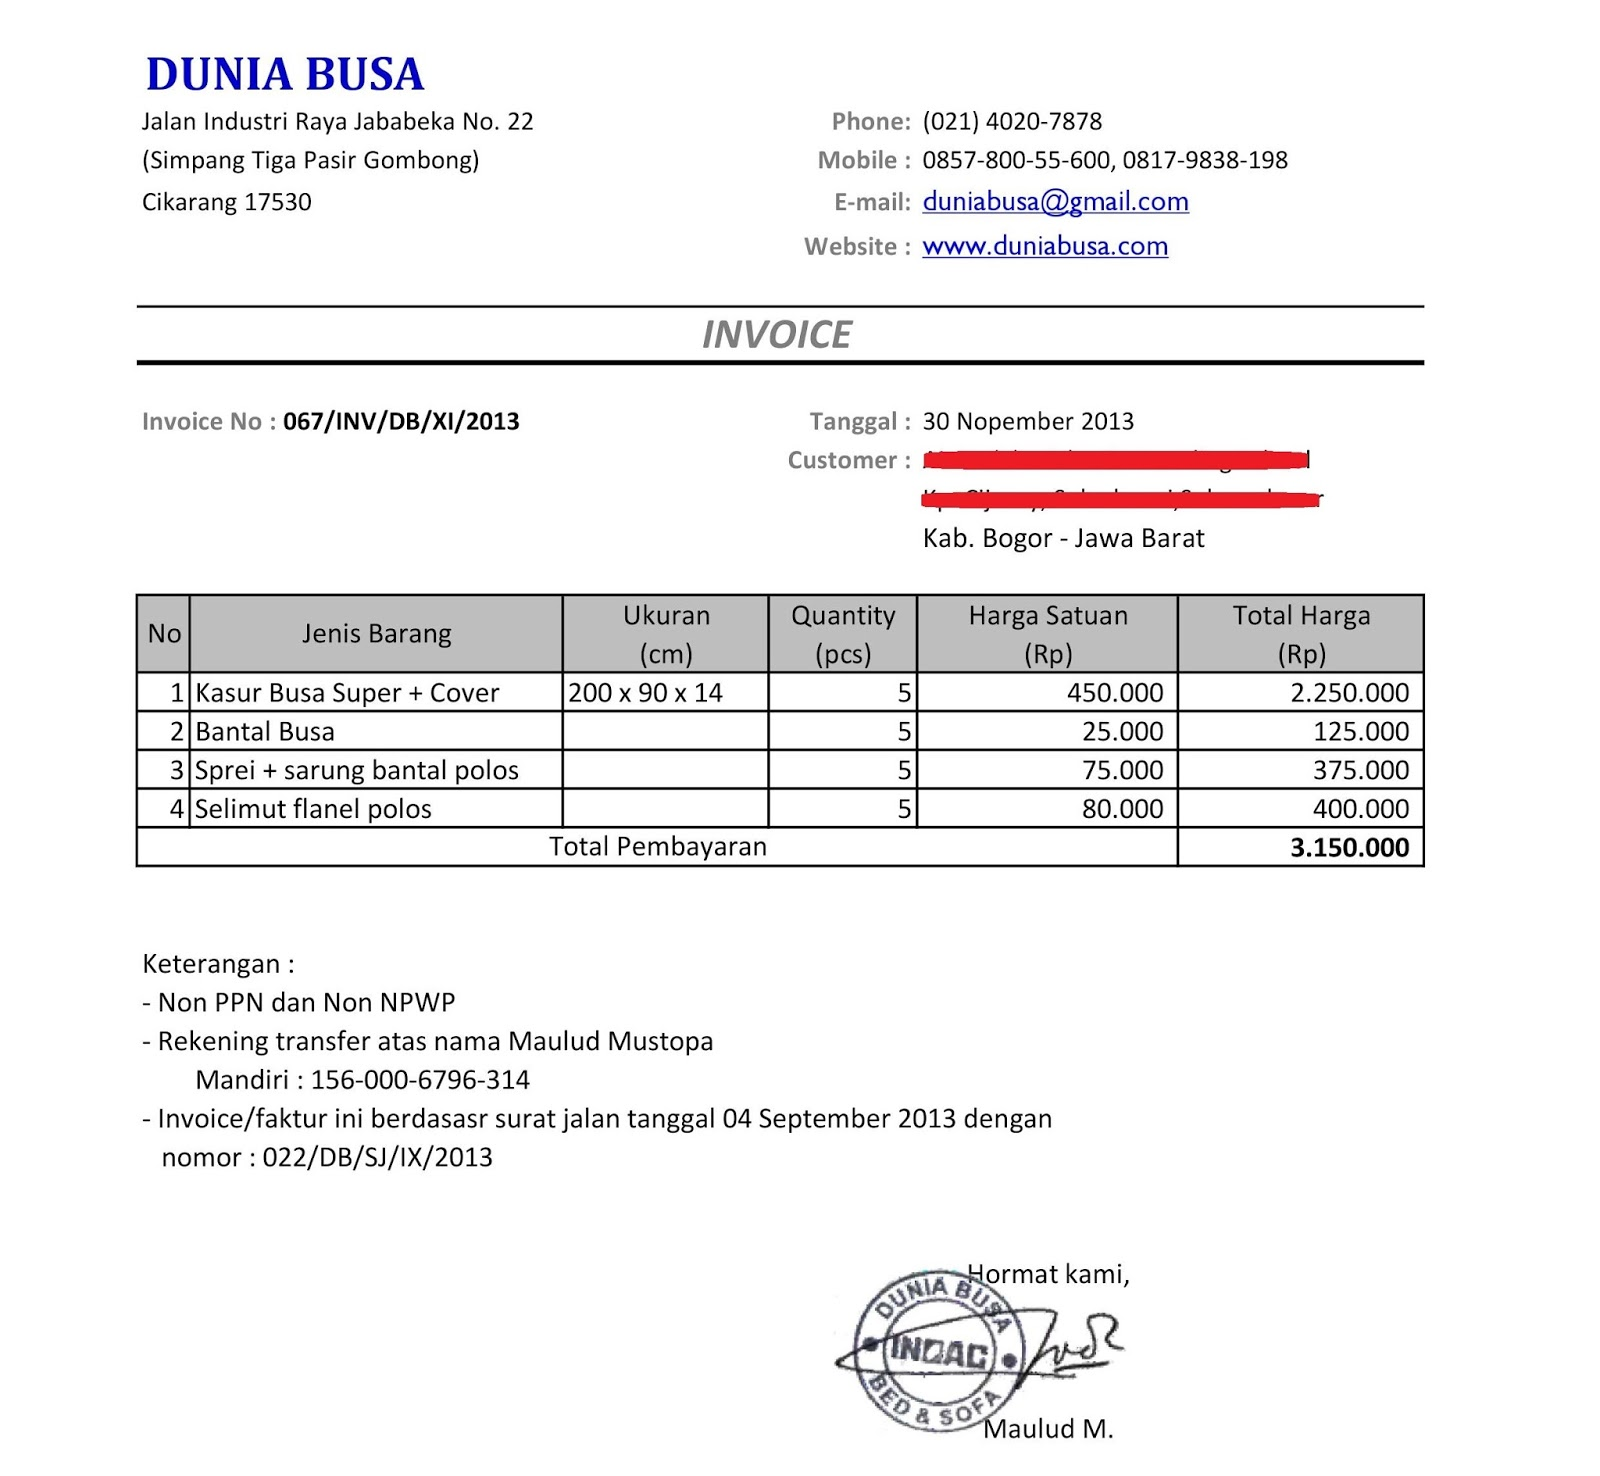 Centralasianshepherdus  Unique Free Invoice Online  Create Invoice Online  Invoice Template  With Fair Contoh Format Invoice Atau Surat Tagihan  Brankas Arsip  Free Invoice Online With Nice Retail Invoice Also Accounts Payable Invoices In Addition  Tacoma Invoice And Make My Own Invoice As Well As Sample Graphic Design Invoice Additionally Invoice Financing Definition From Sklepco With Centralasianshepherdus  Fair Free Invoice Online  Create Invoice Online  Invoice Template  With Nice Contoh Format Invoice Atau Surat Tagihan  Brankas Arsip  Free Invoice Online And Unique Retail Invoice Also Accounts Payable Invoices In Addition  Tacoma Invoice From Sklepco